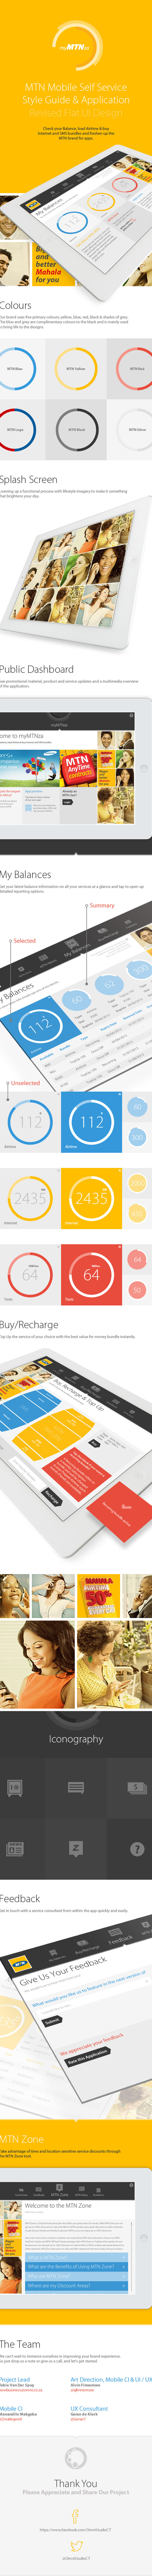 MTN Mobile Self Service Style Guide & Application on Behance